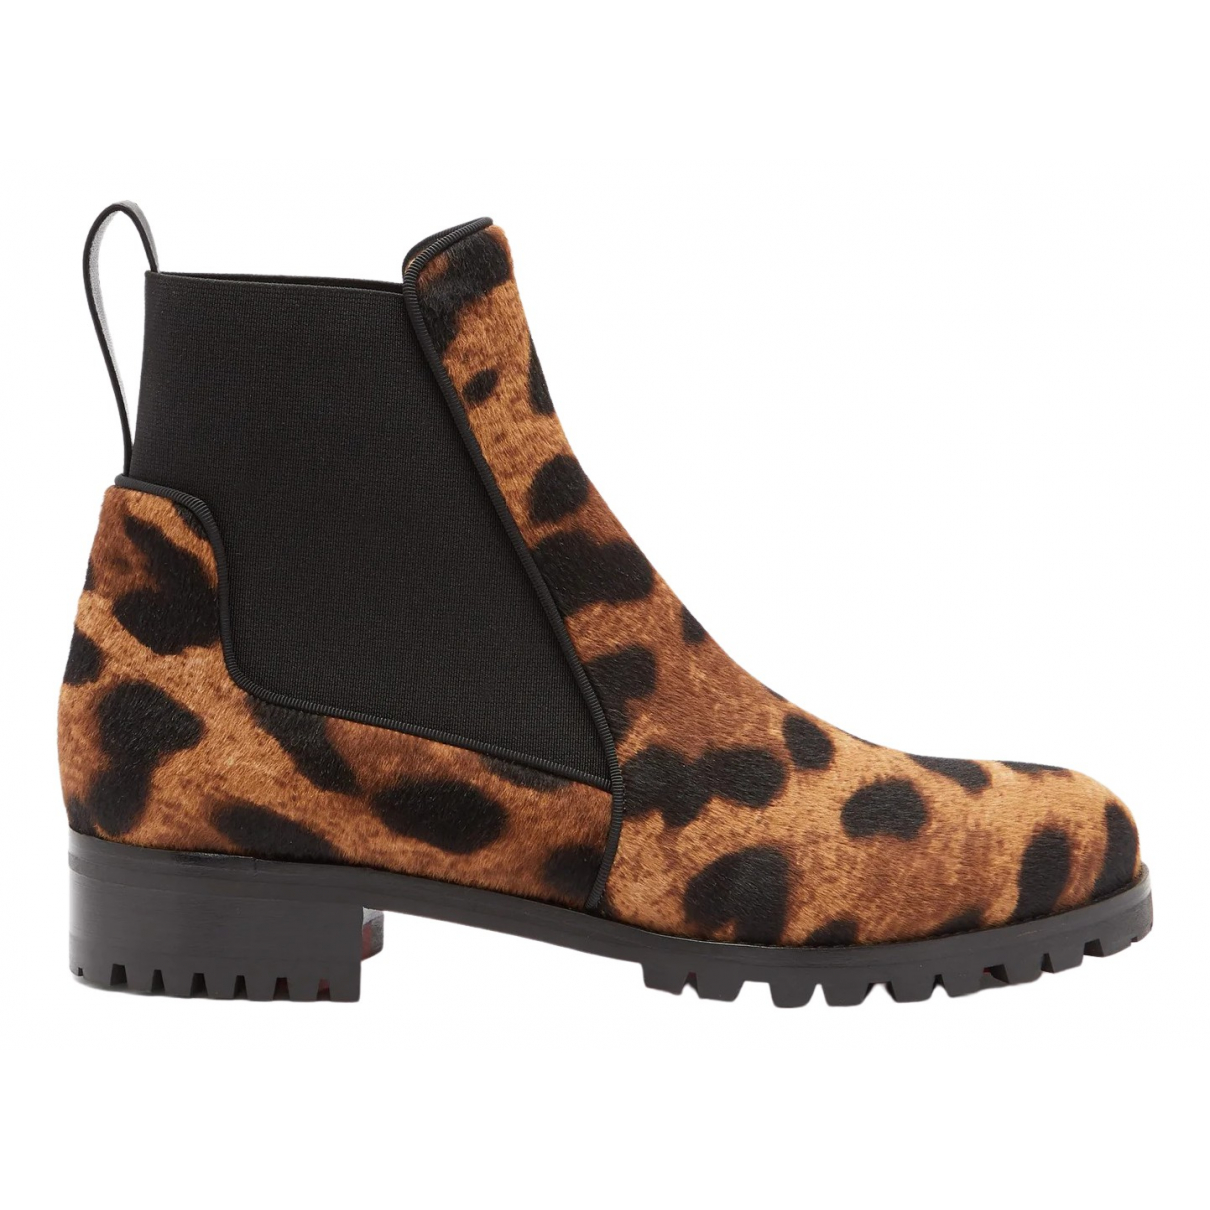 Christian Louboutin \N Brown Pony-style calfskin Ankle boots for Women 39 EU